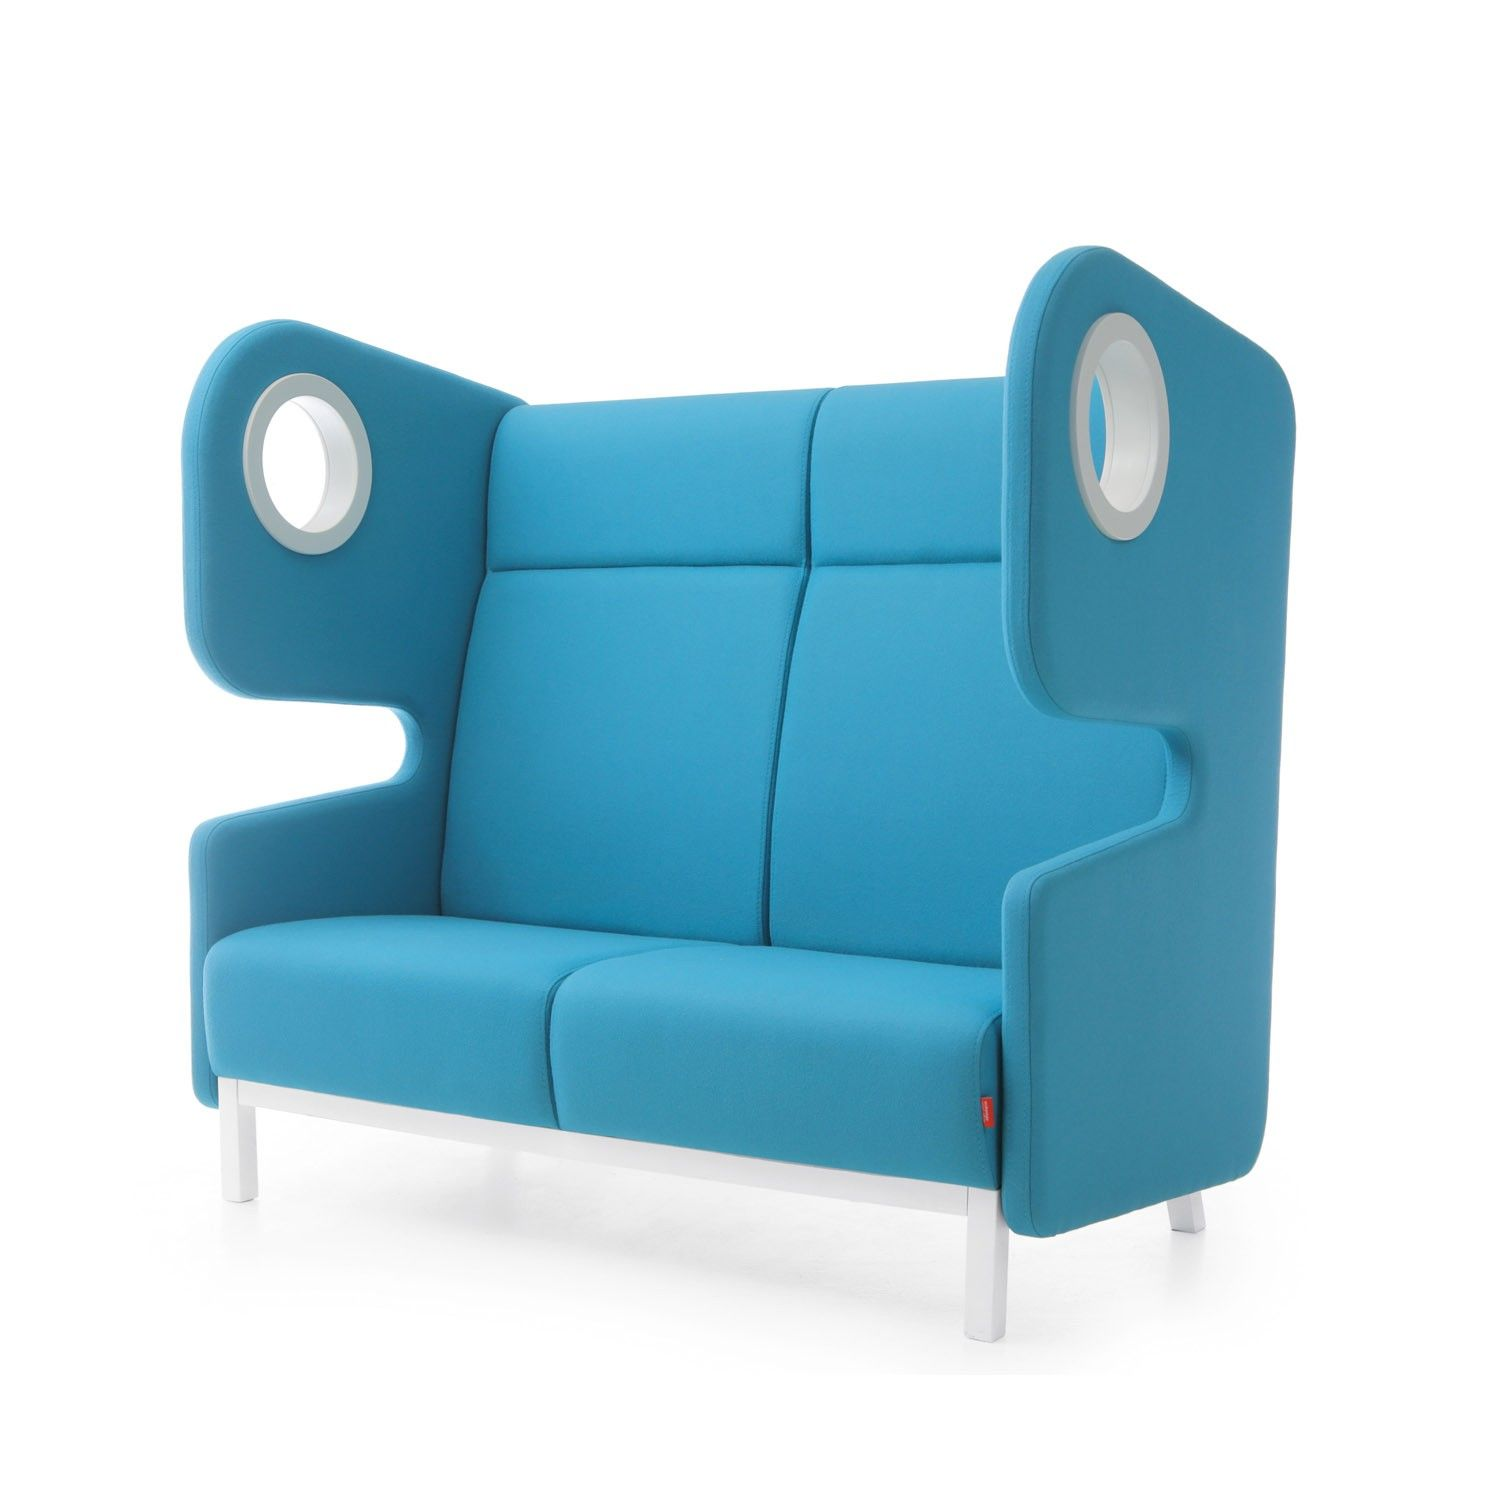 Packman High Back Sofa is a soft seating system that prises a